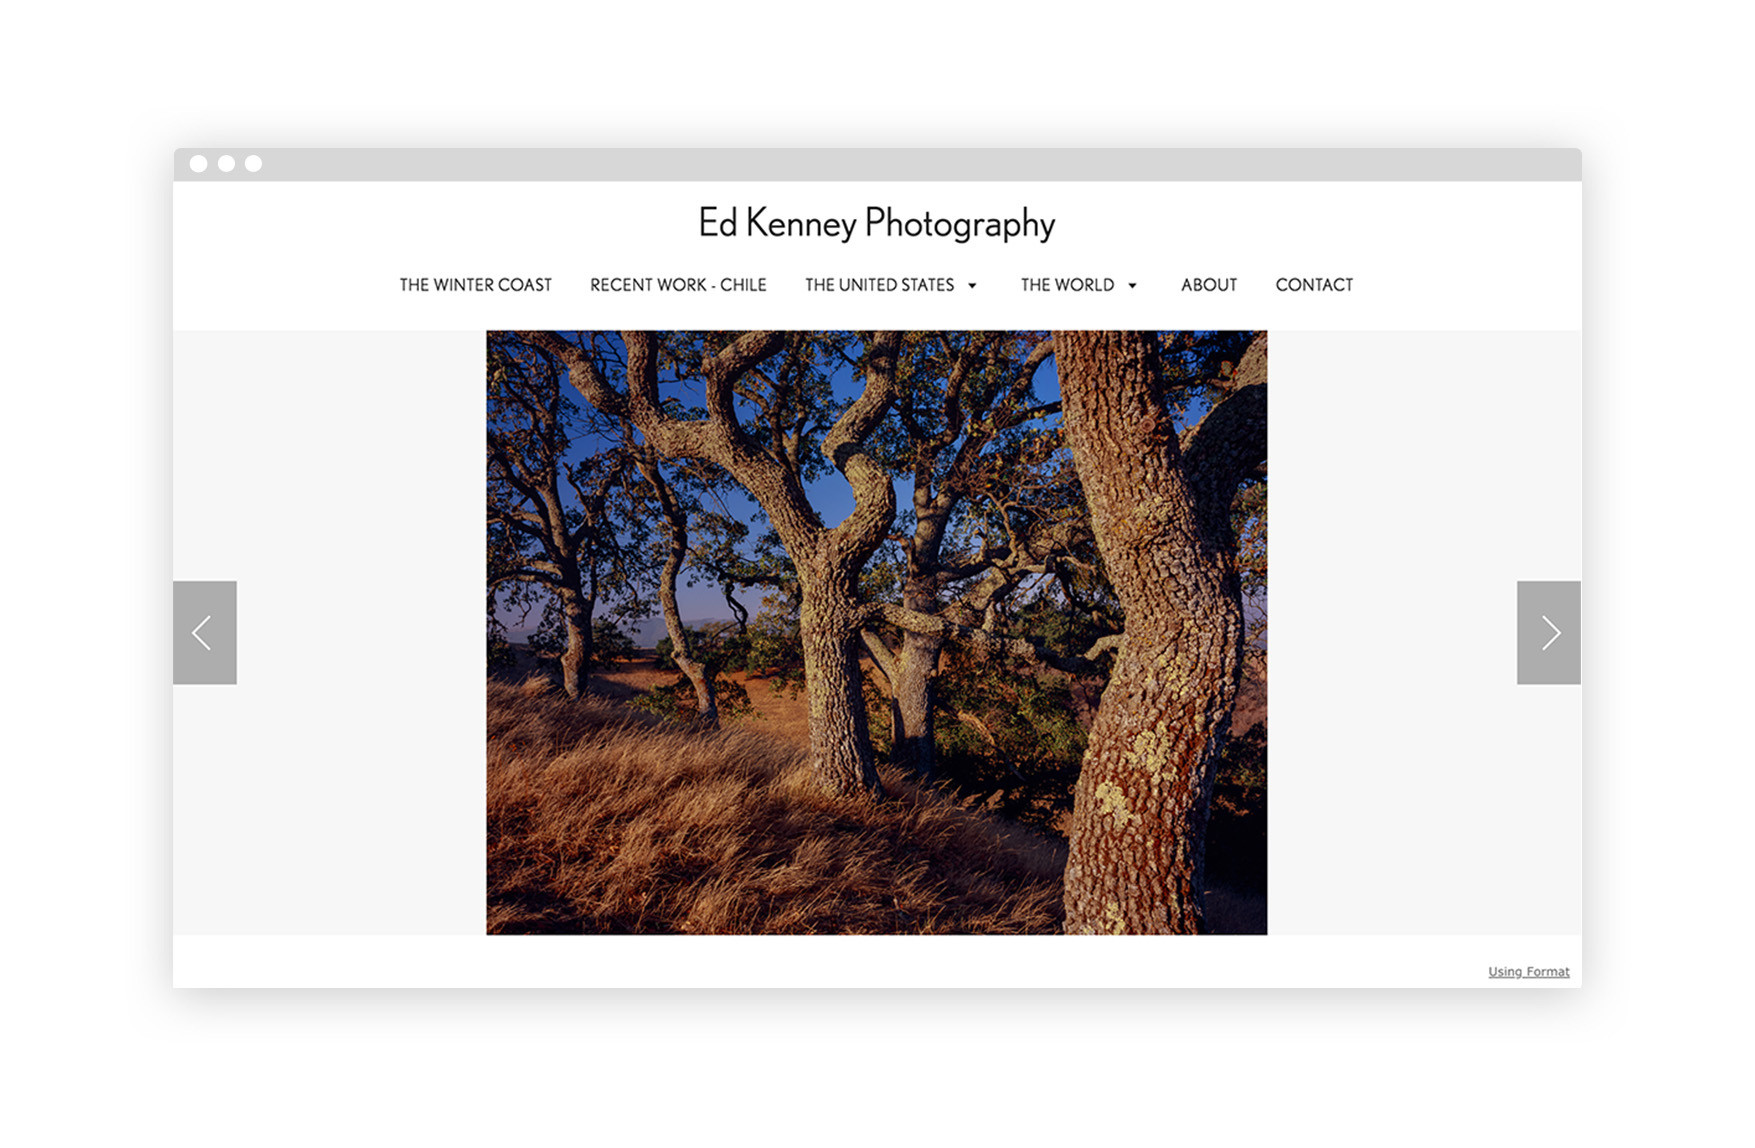 images?q=tbn:ANd9GcQh_l3eQ5xwiPy07kGEXjmjgmBKBRB7H2mRxCGhv1tFWg5c_mWT Ideas For Landscape Photography Jobs Near Me @capturingmomentsphotography.net